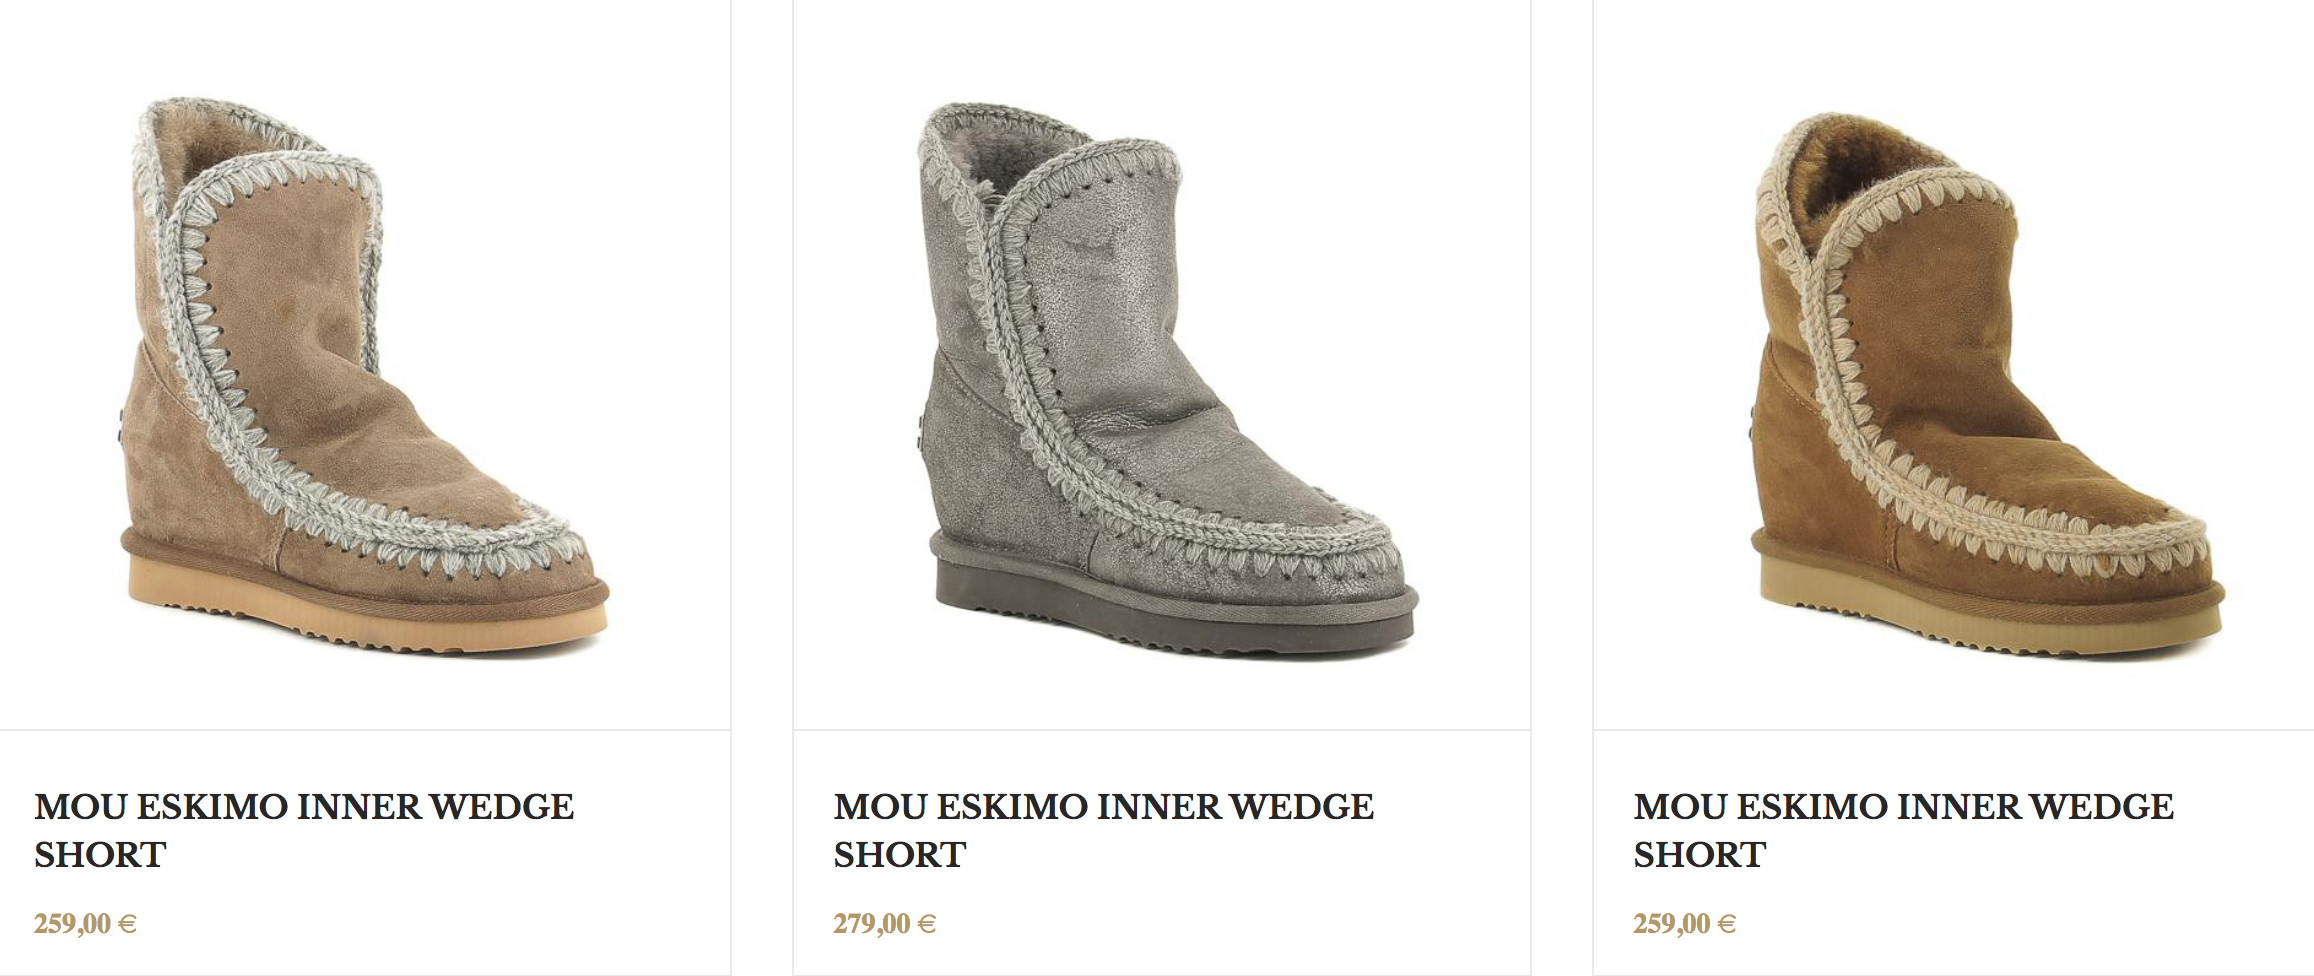 botas mou eskimo inner wedge short